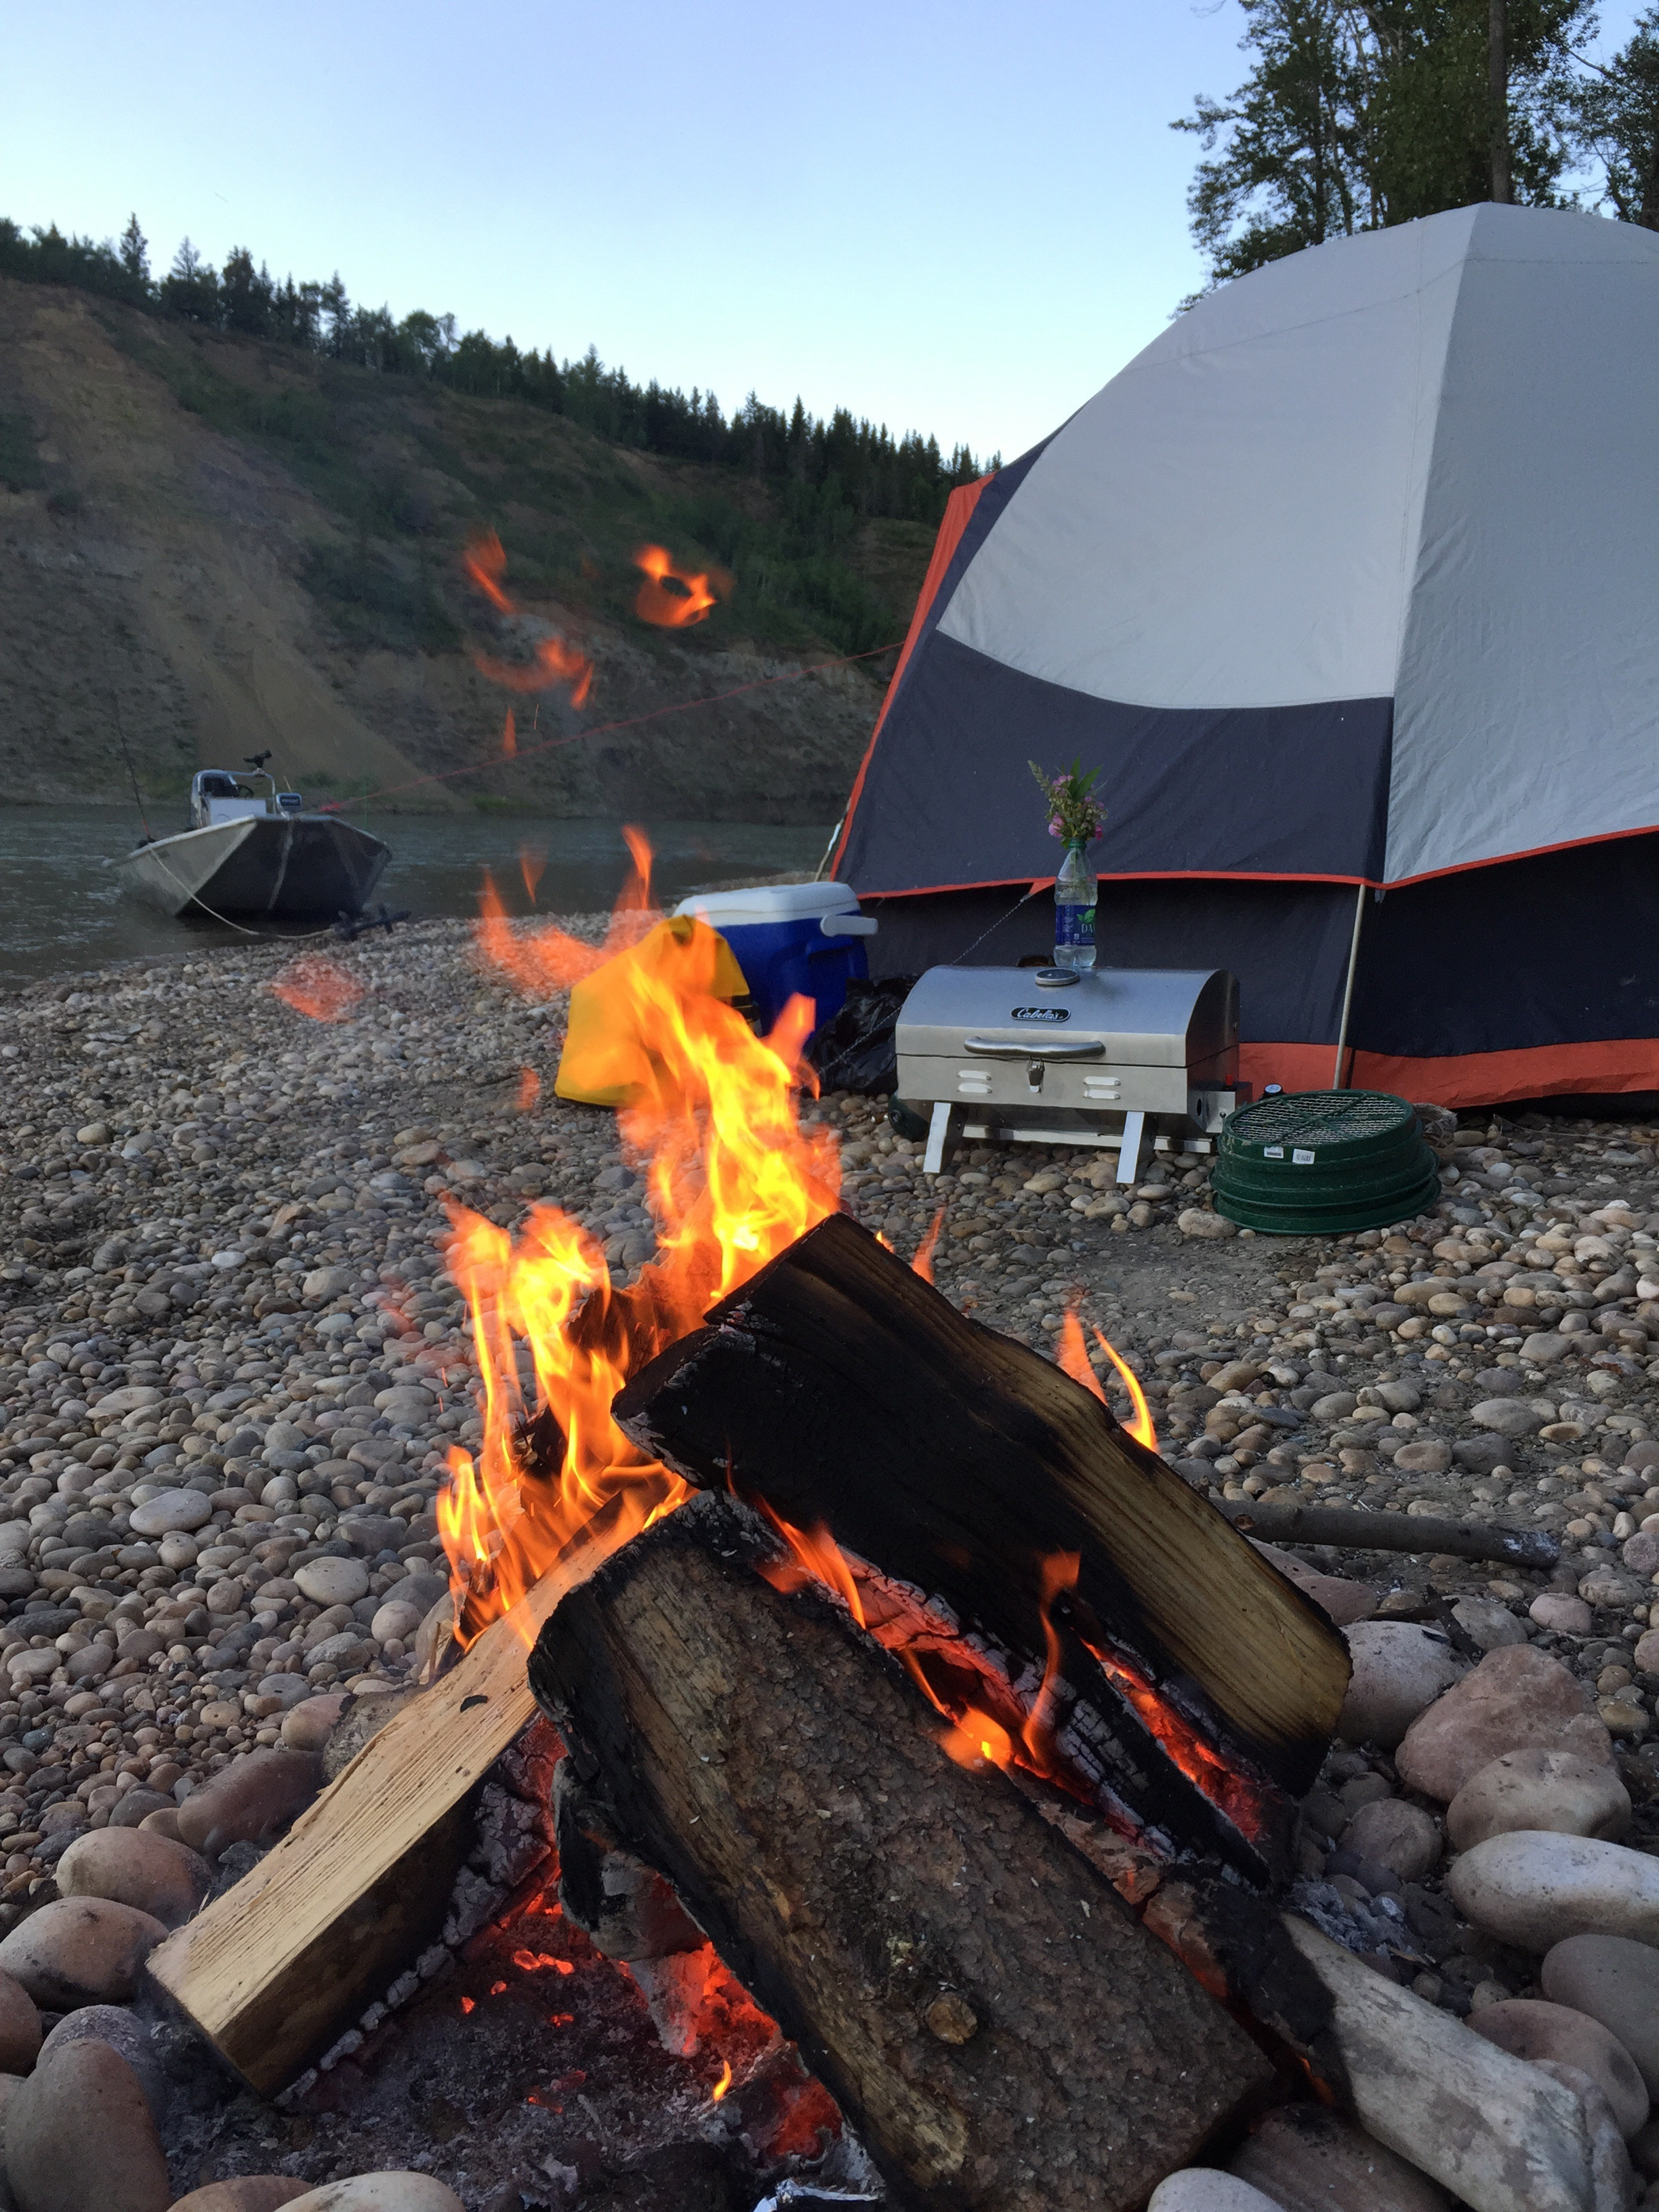 Spend the night out on an island on the North Saskatchewan River with Lunkers Fishing Adventures. Nothing is set in stone. If you have and idea, pitch it to us and we can make it happen.  We specialize in making your outdoor adventures personalized and memorable.(Fires only permitted when fire bans are lifted)